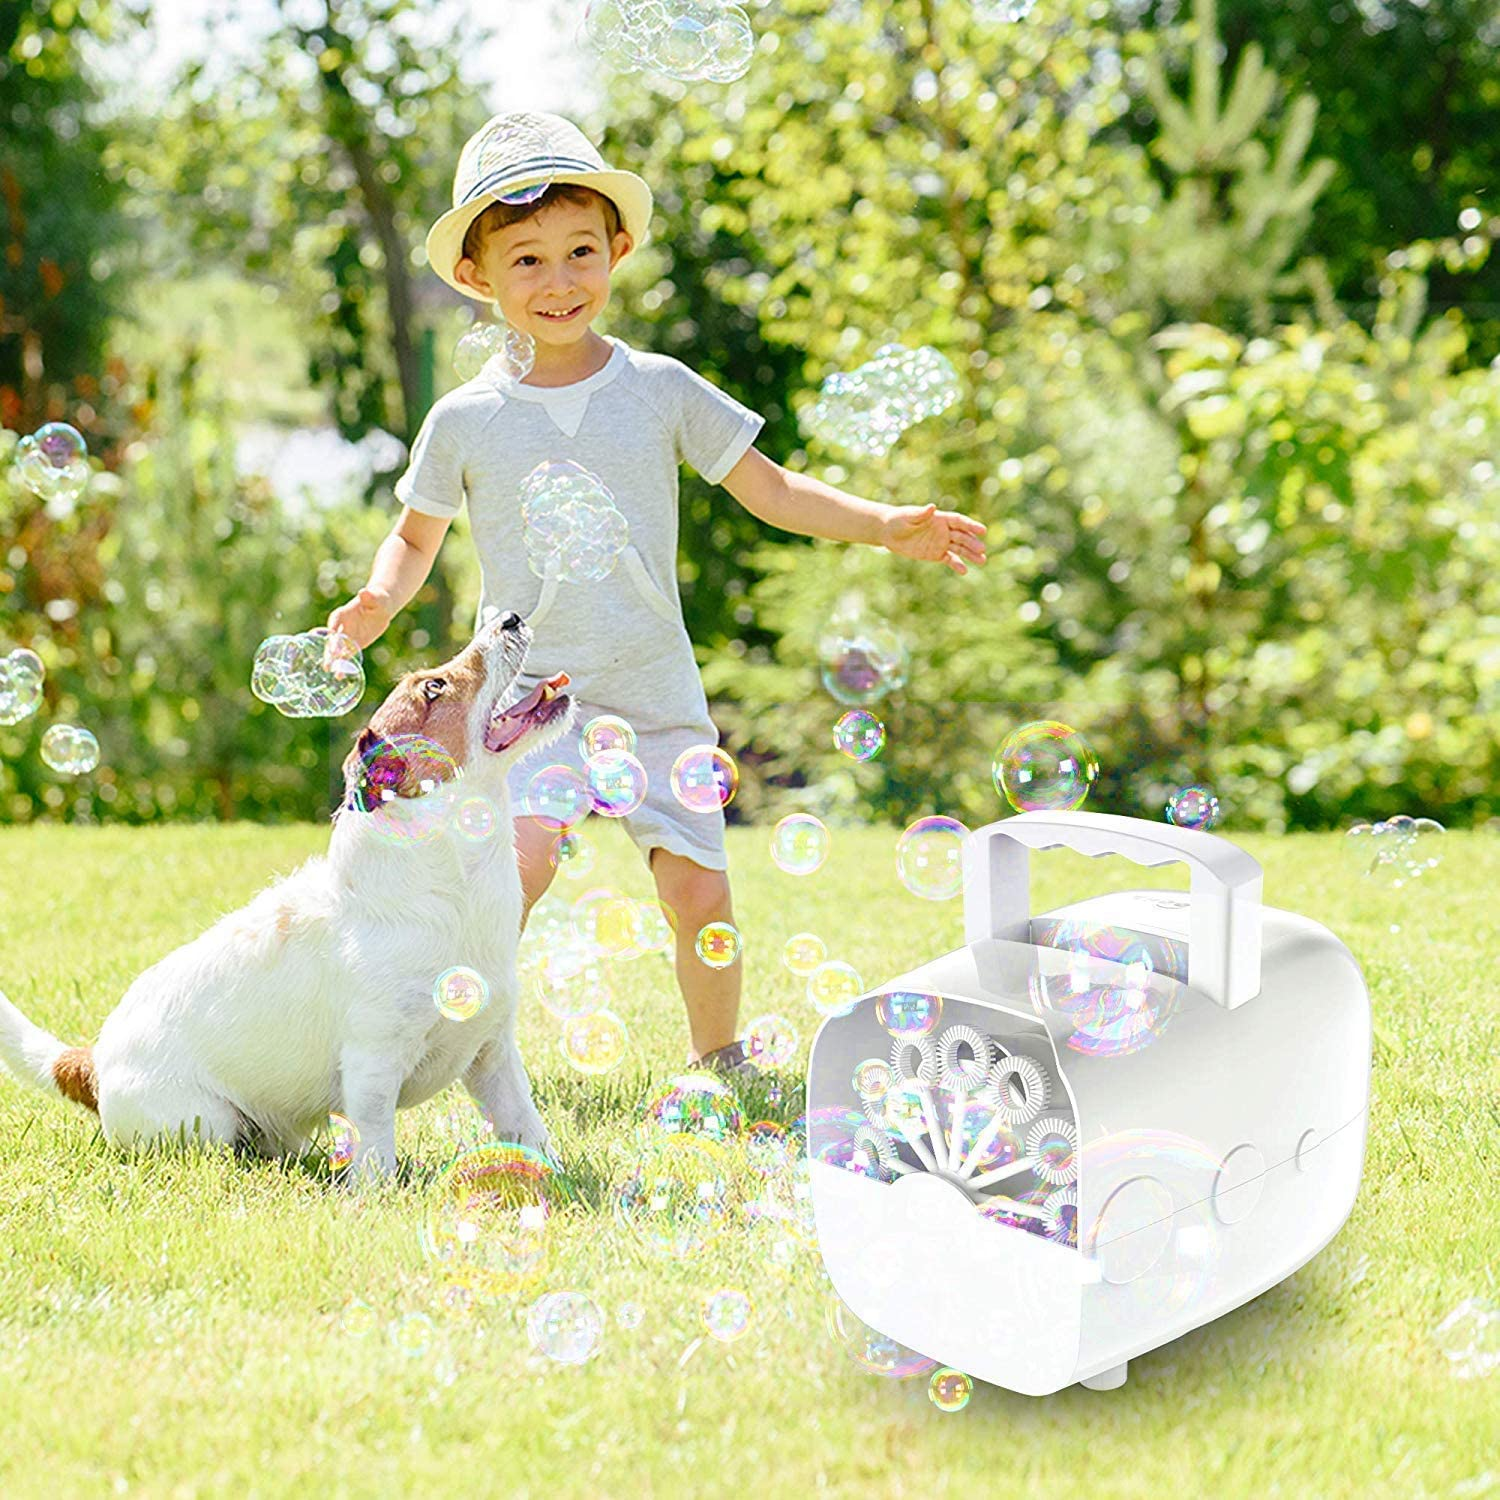 JanTeel Portable Auto Bubbles Maker White Bubble Machine 1500 Bubbles Per Minute for Outdoor//Indoor Use Batteries NOT Included Rechargeable Automatic Bubble Blower With USB Cable